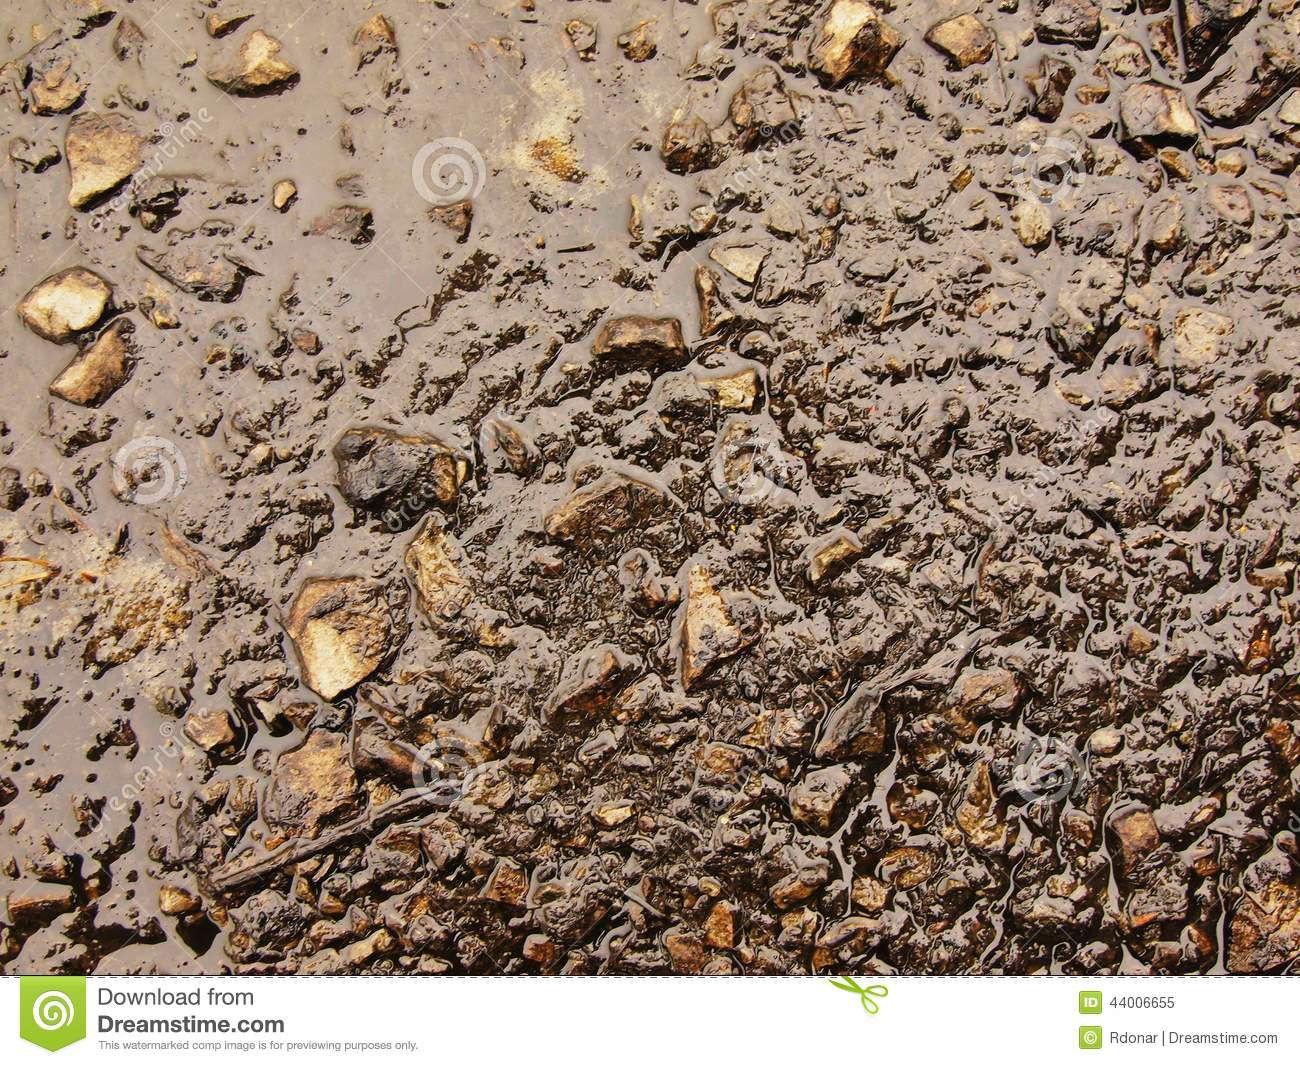 Download Wet Burnt Ash Of Grass Solidified By Rain Into Dark Mud. Water Hanged Ash Into Cover Stock Image - Image of drought, black: 44006655